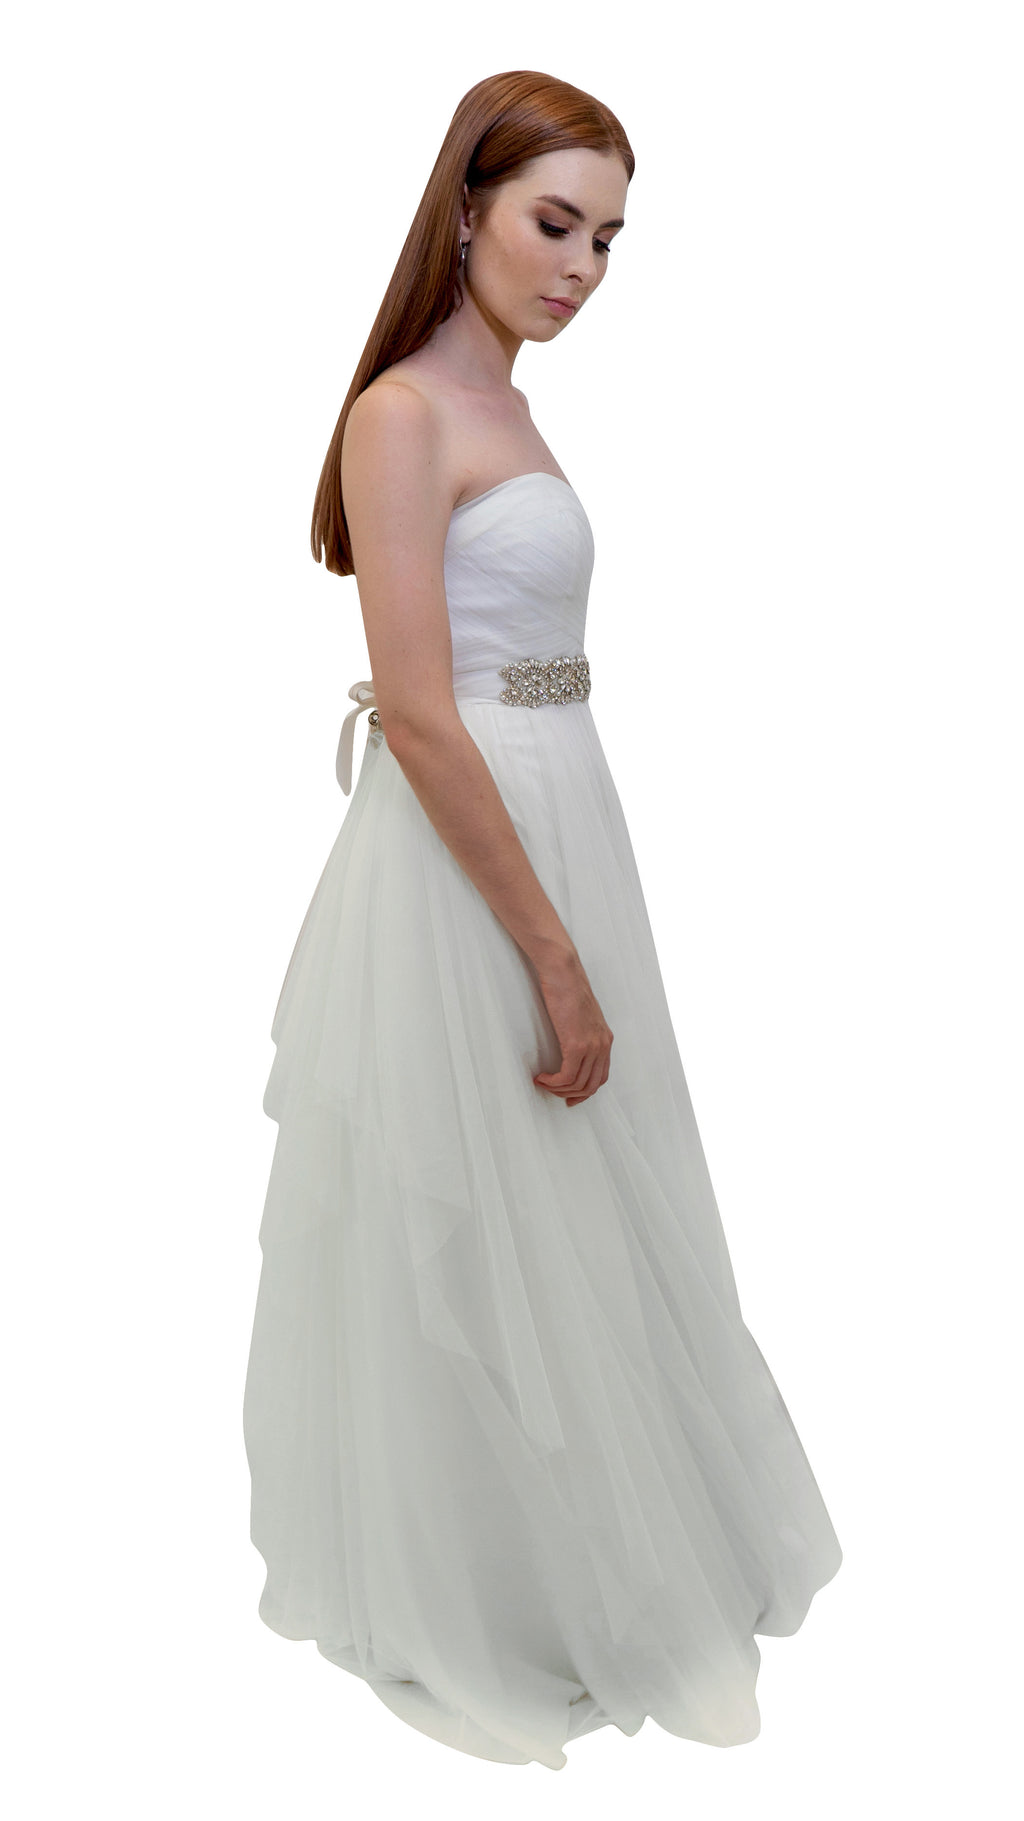 Bariano Bridal Layered Tulle Ball Gown White side